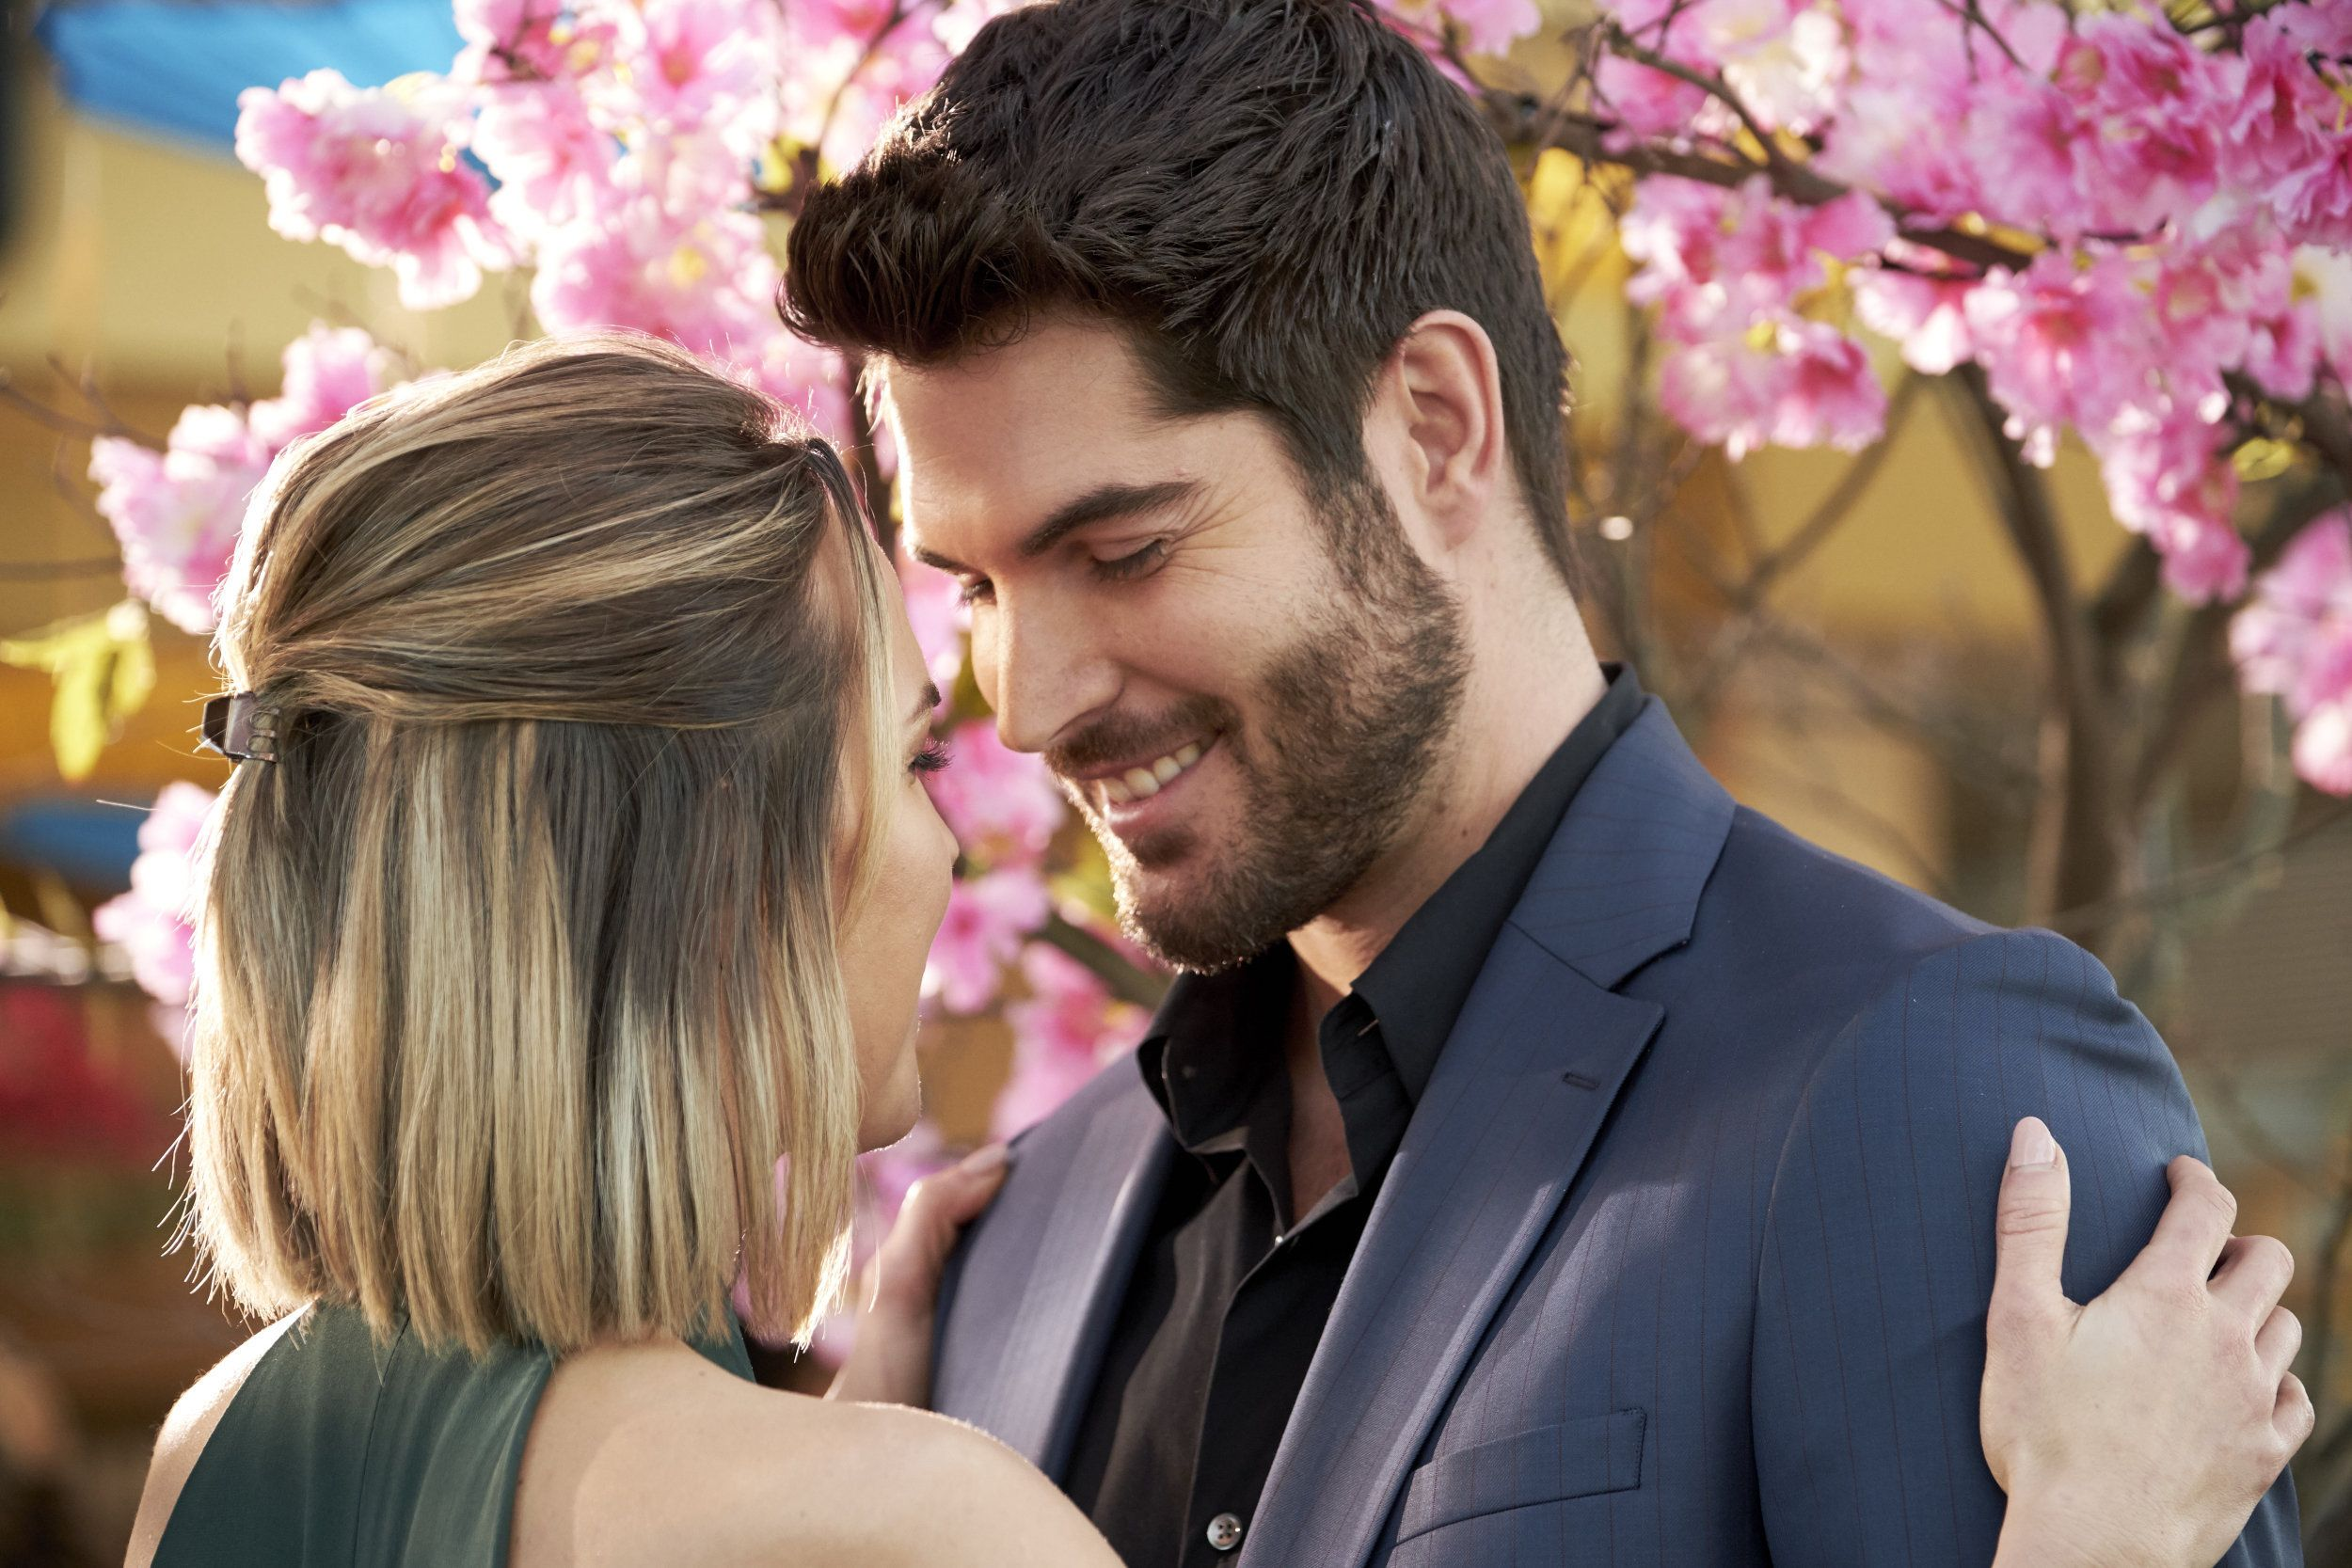 Watch A Preview For The Hallmark Channel Original Movie A Brush